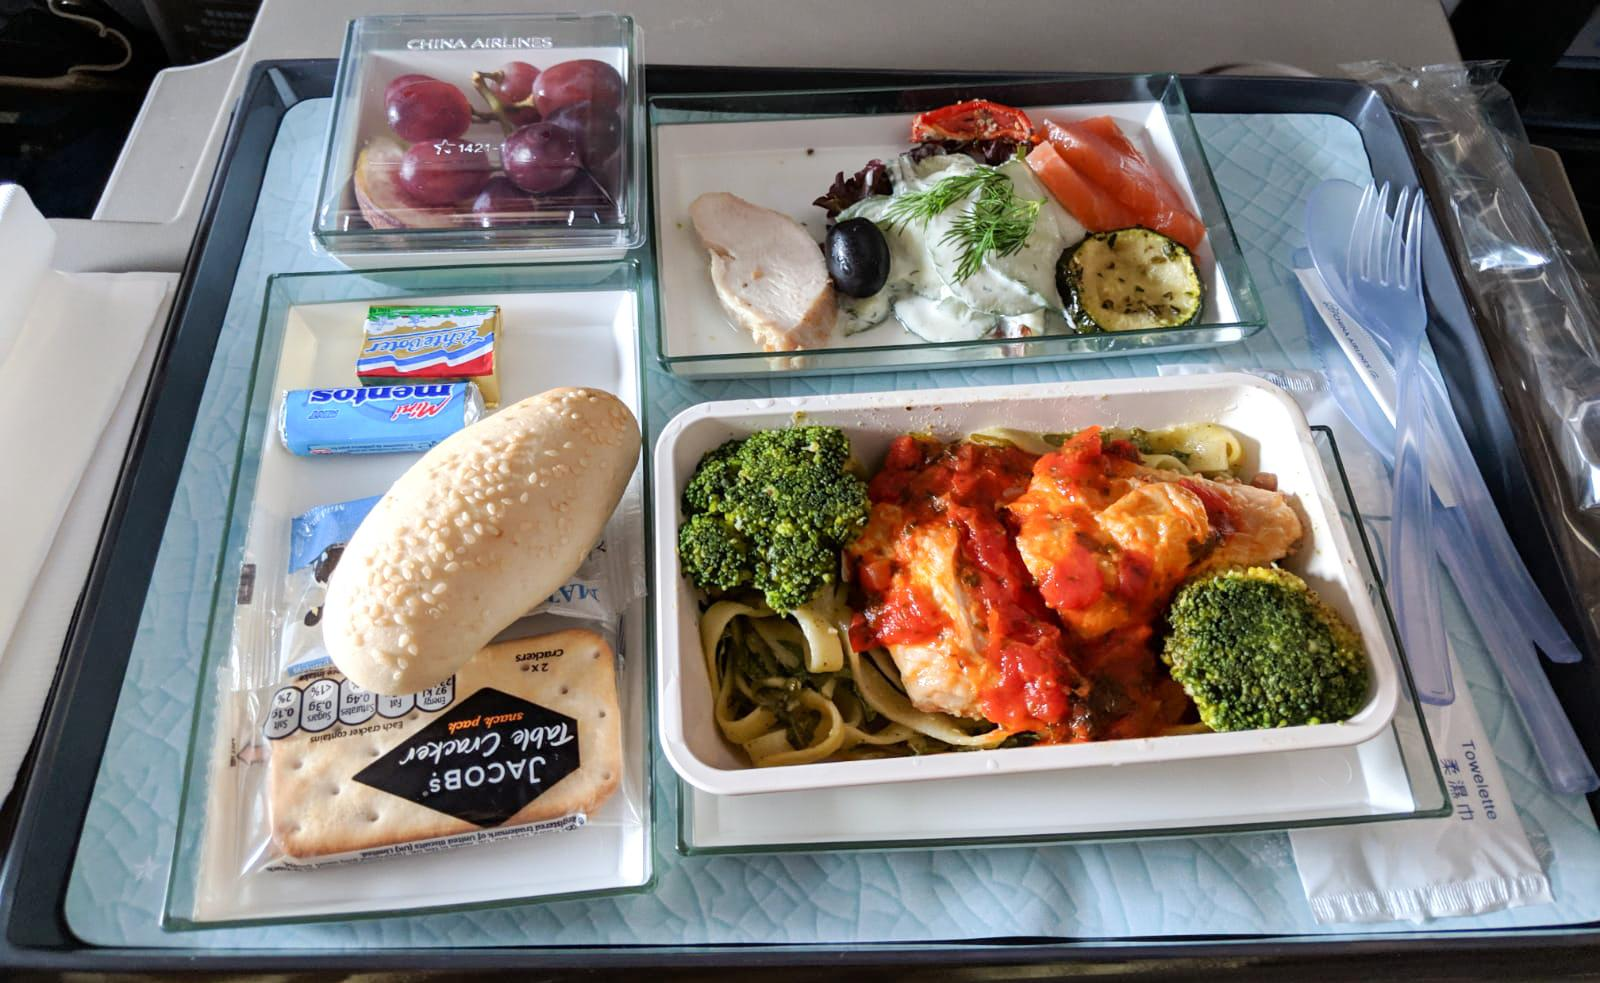 China Airlines A350 Premium Economy food